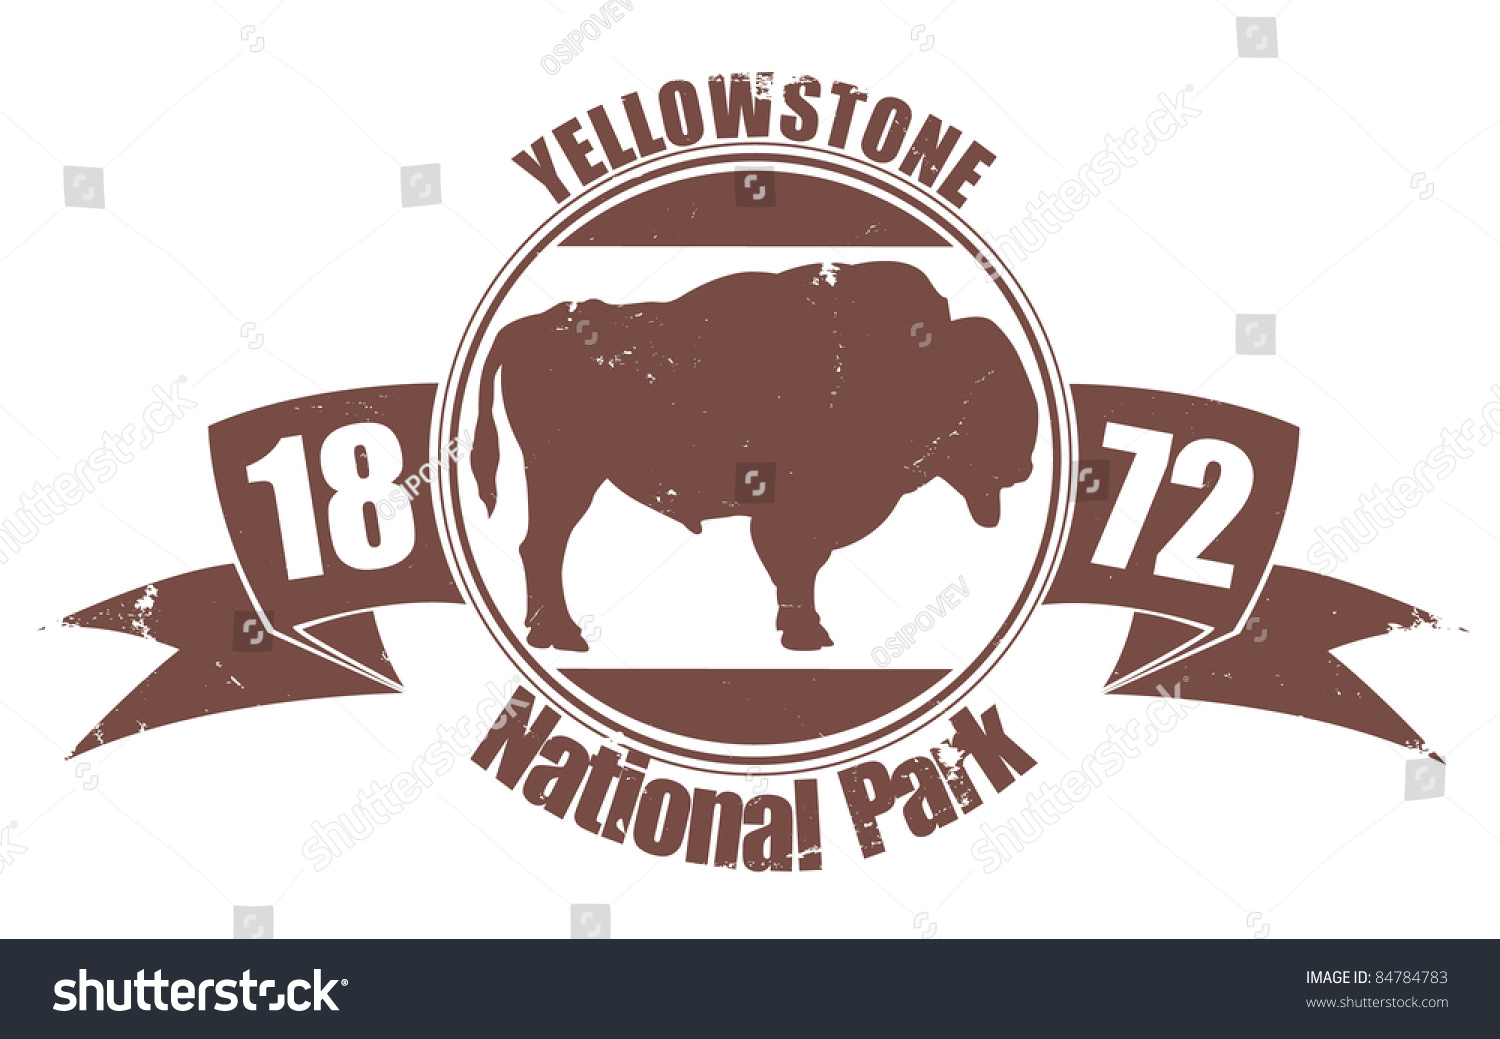 Yellowstone National Park Stamp Stock Vector Royalty Free 84784783